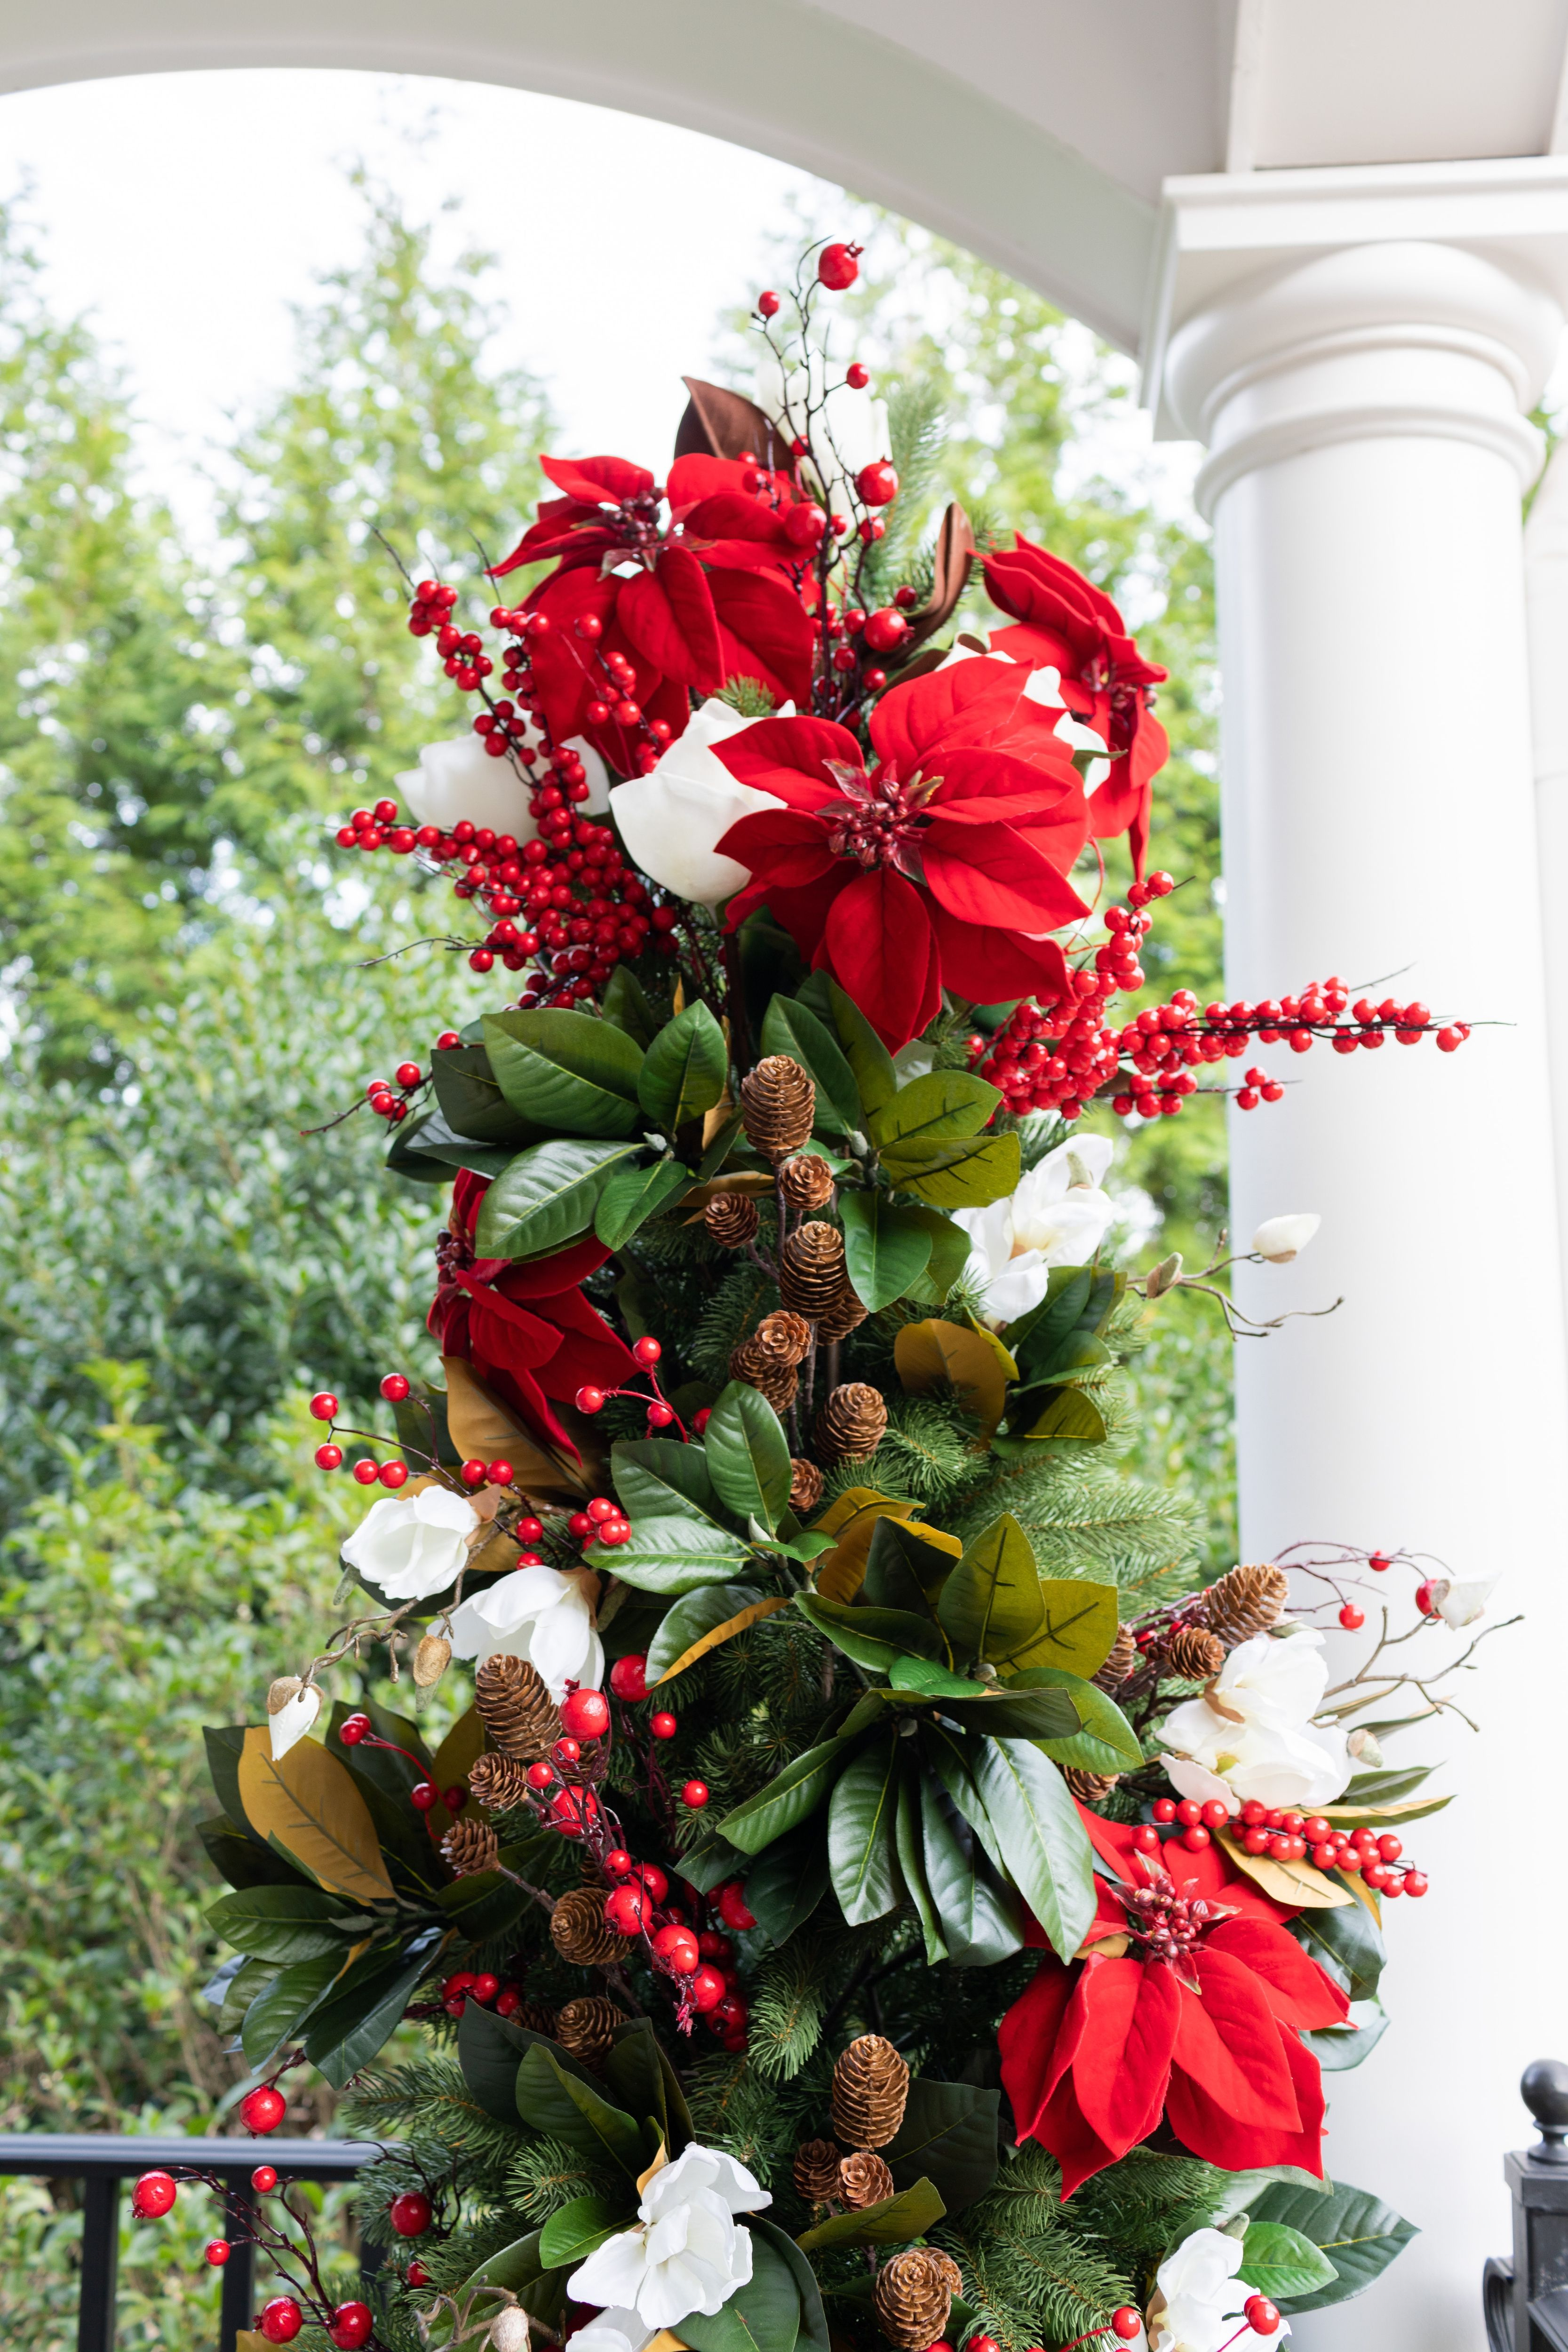 Style your Christmas Tree with Red Poinsettia flowers from Afloral.com. Image by @bluegraygal #poinsettia #fakeflowers #christmastree